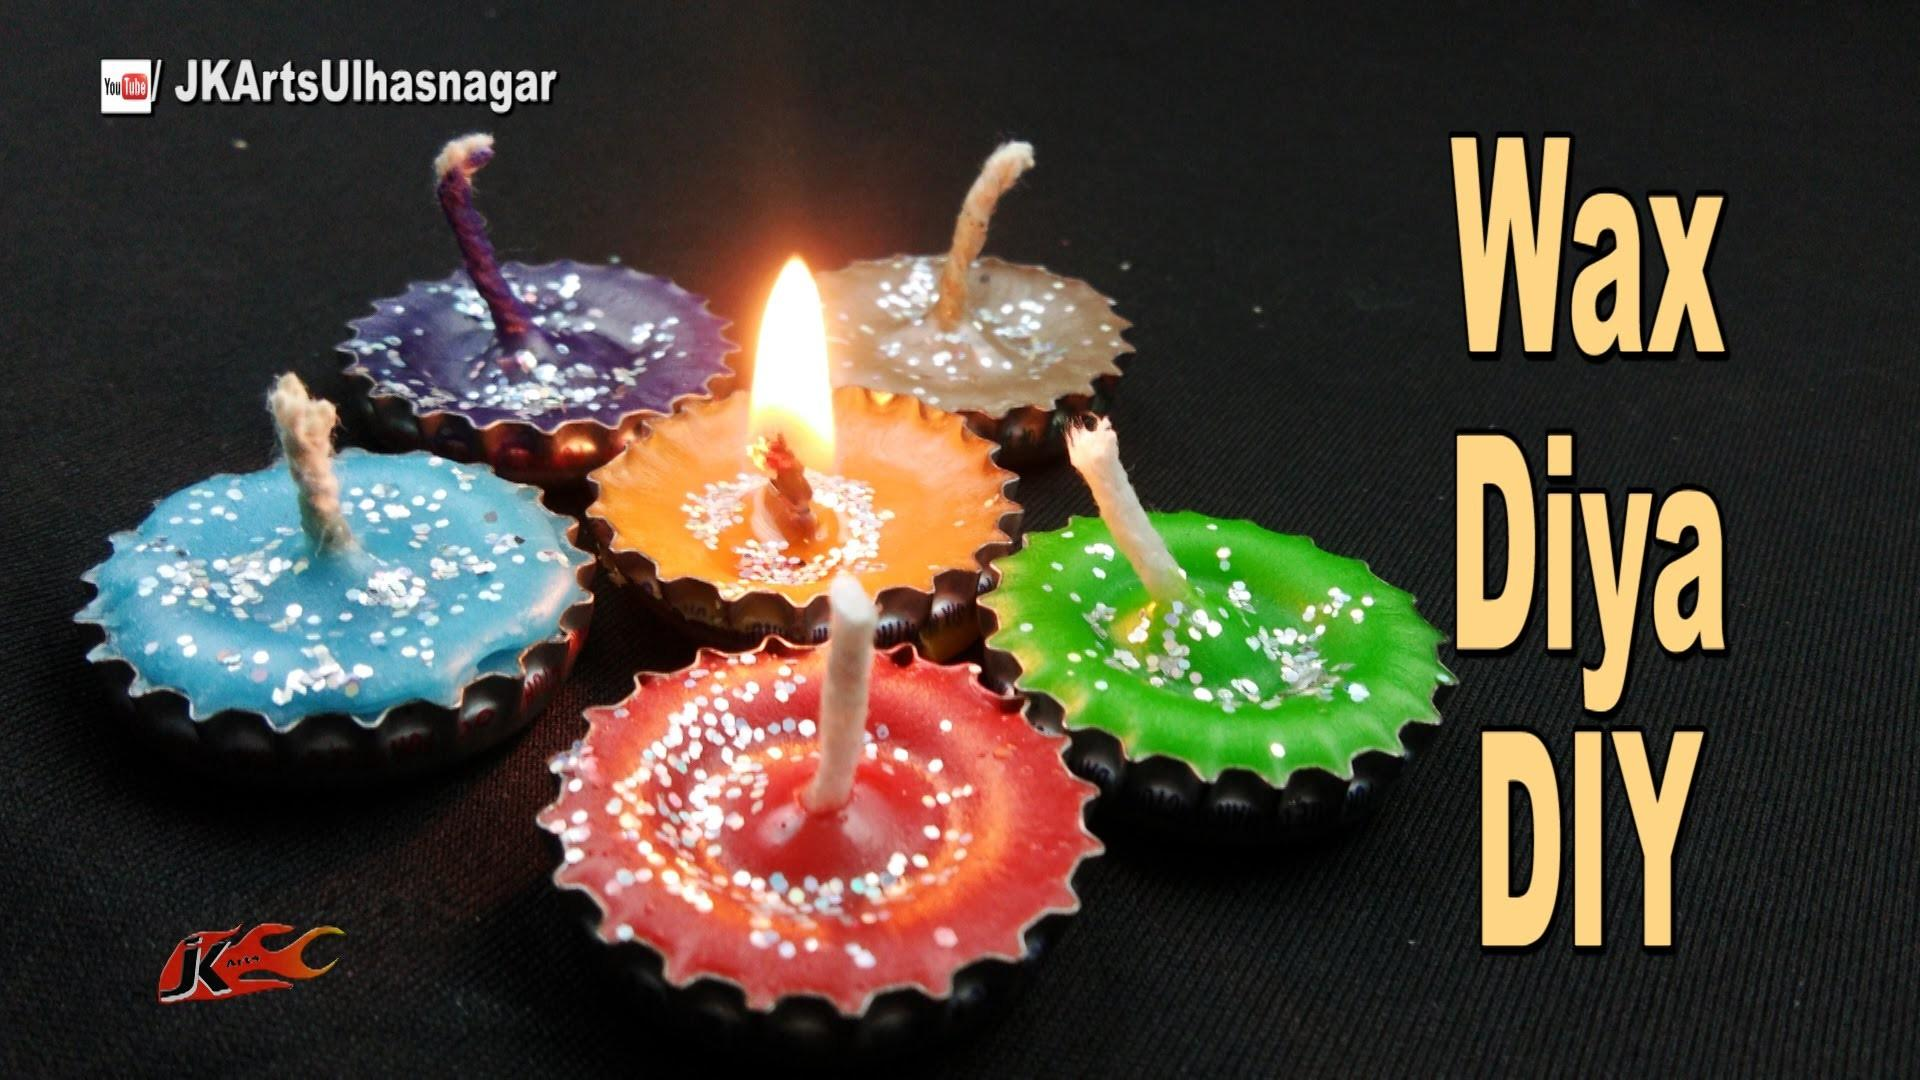 Diy Wax Candle Bottle Cap Best Out Waste